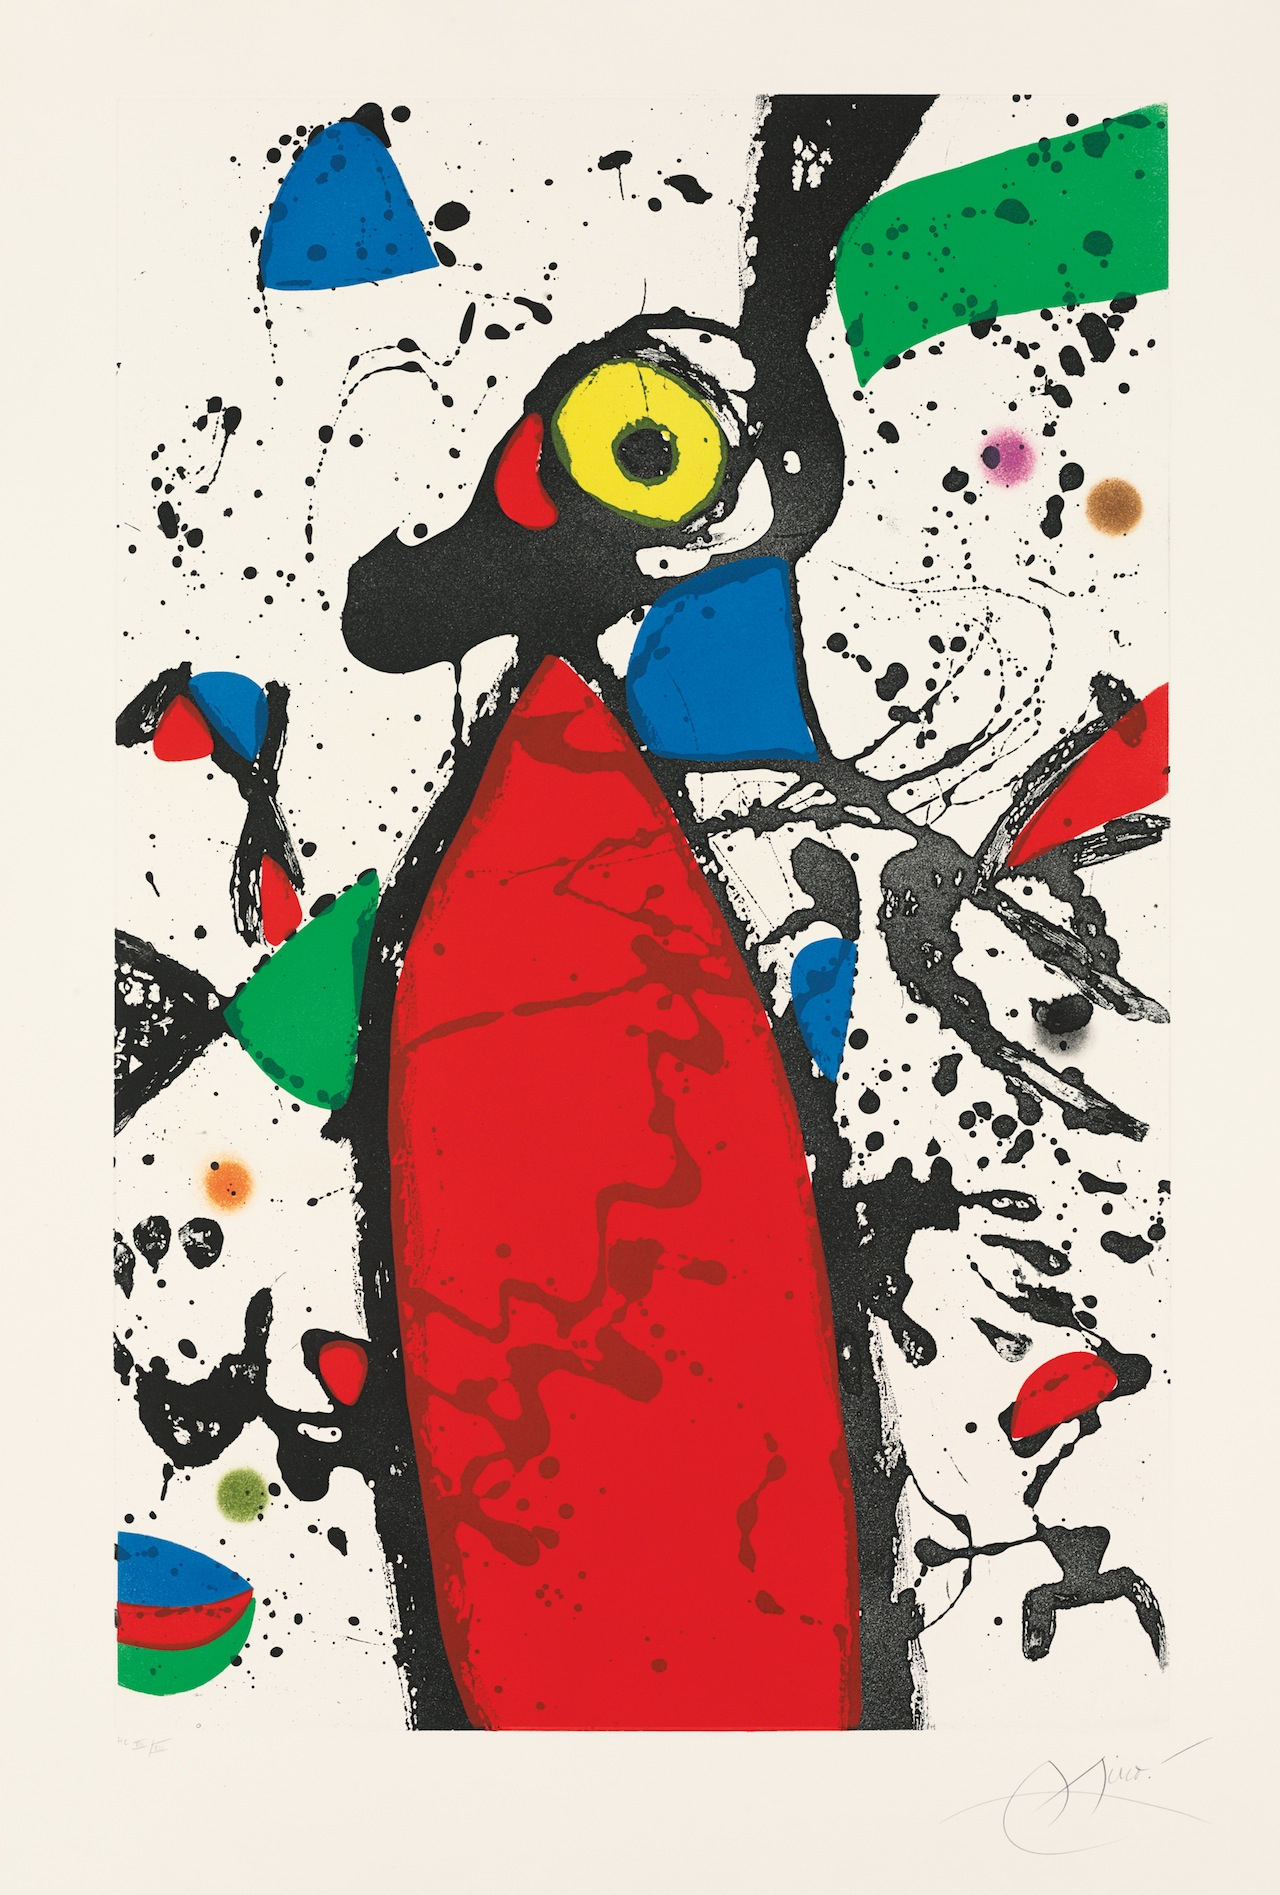 Joan Miró, Red Mouse with Mantilla, 1975, aquatint. Private Collection. © 2014 Successió Miró/Artists Rights Society (ARS), New York/ADAGP, Paris. © Christie's Images/Bridgeman Art Library.